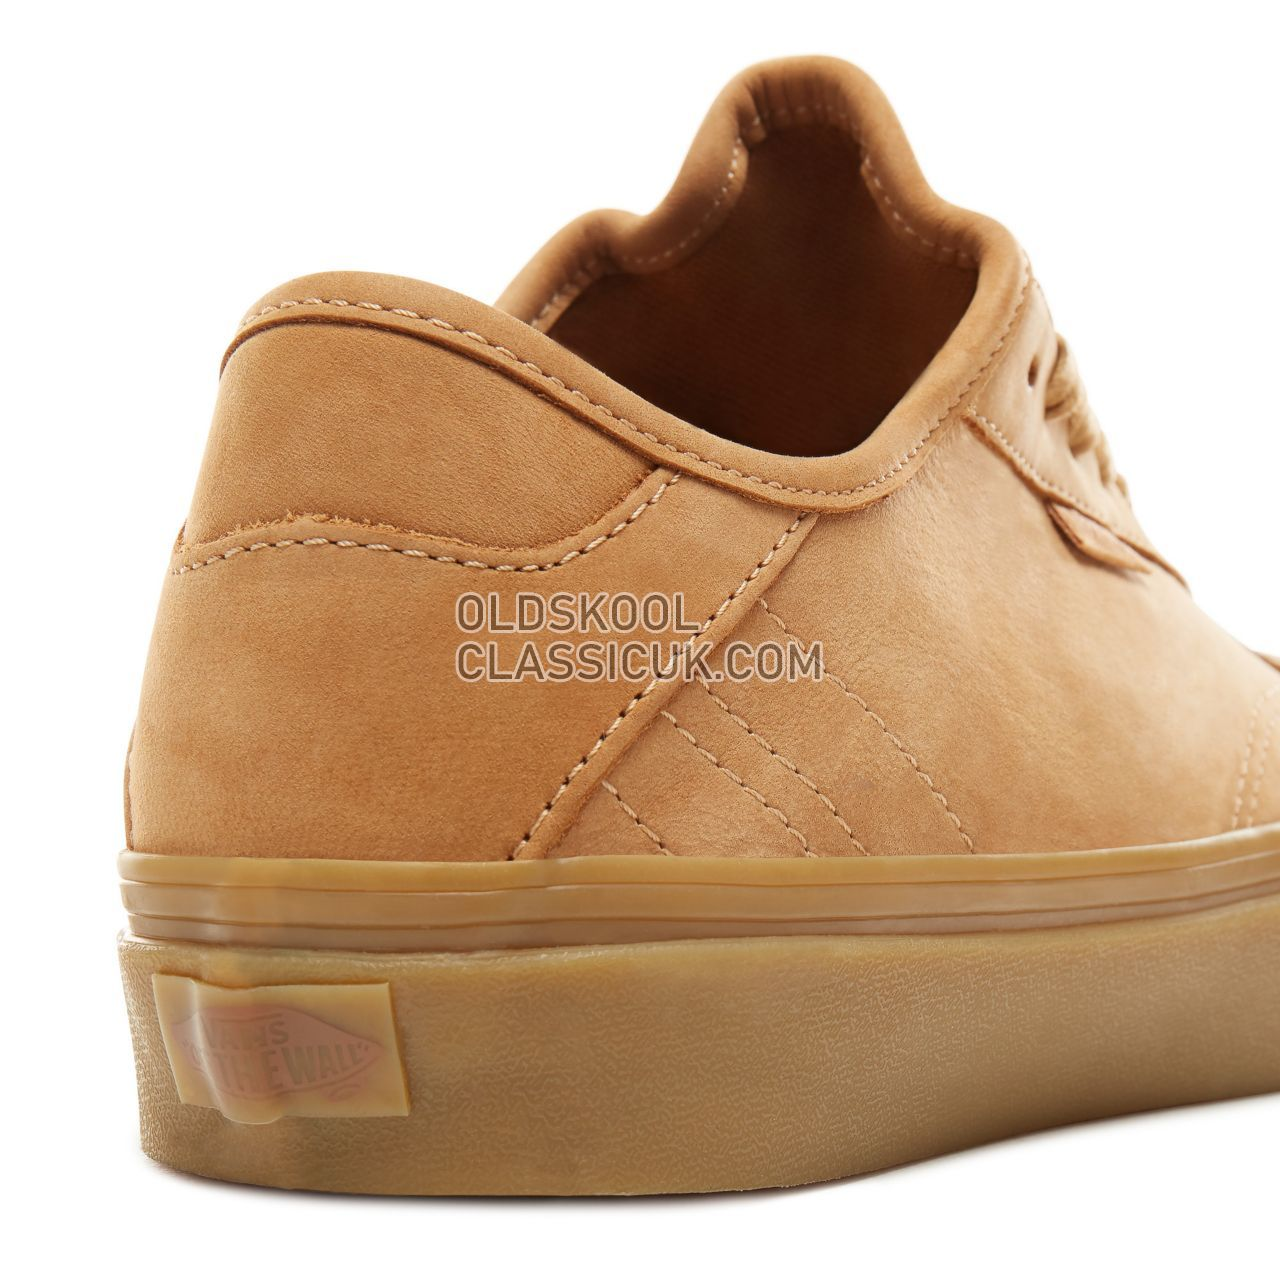 Vans Gum Diamo Ni Sneakers Mens (Gum) Apple Cinnamon/Rubber VN0A3TKDUMD Shoes